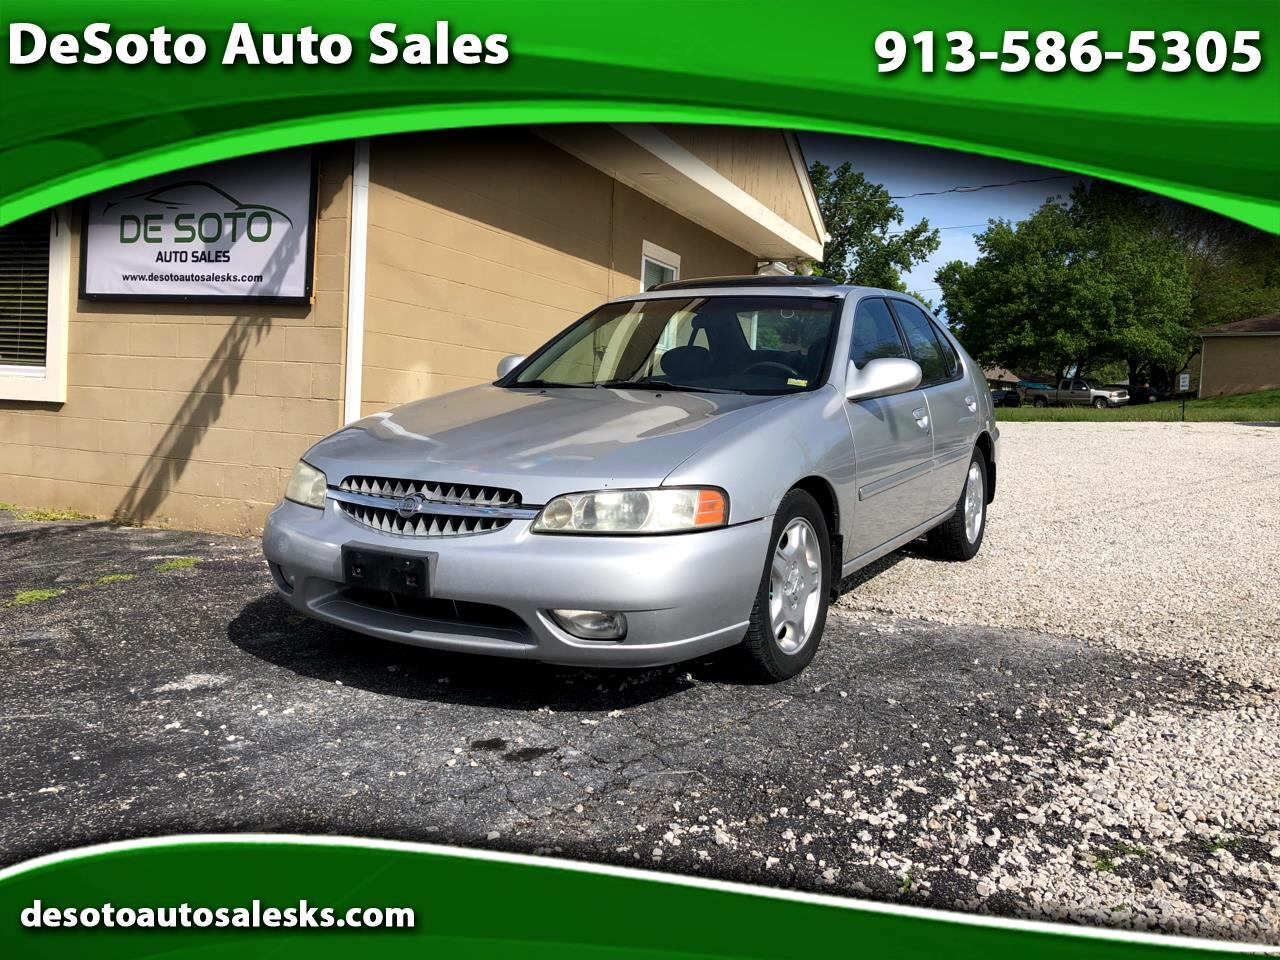 2001 Nissan Altima Gxe >> Used 2001 Nissan Altima Gxe For Sale In Desoto Ks 66018